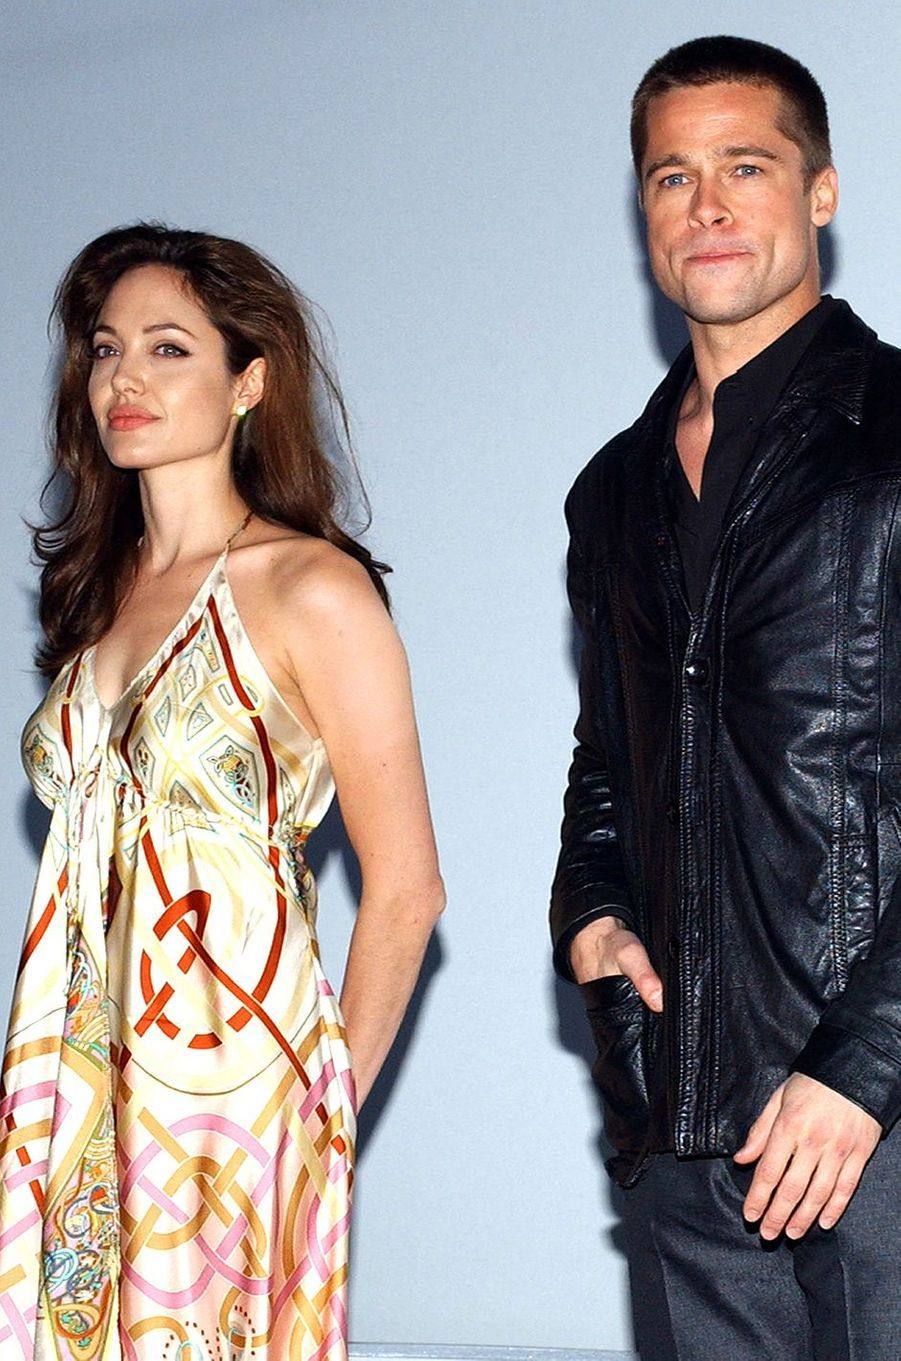 Angelina Jolie et Brad Pitt lors du salon professionnel ShoWest (devenu CinemaCon) à Las Vegas en mars 2005